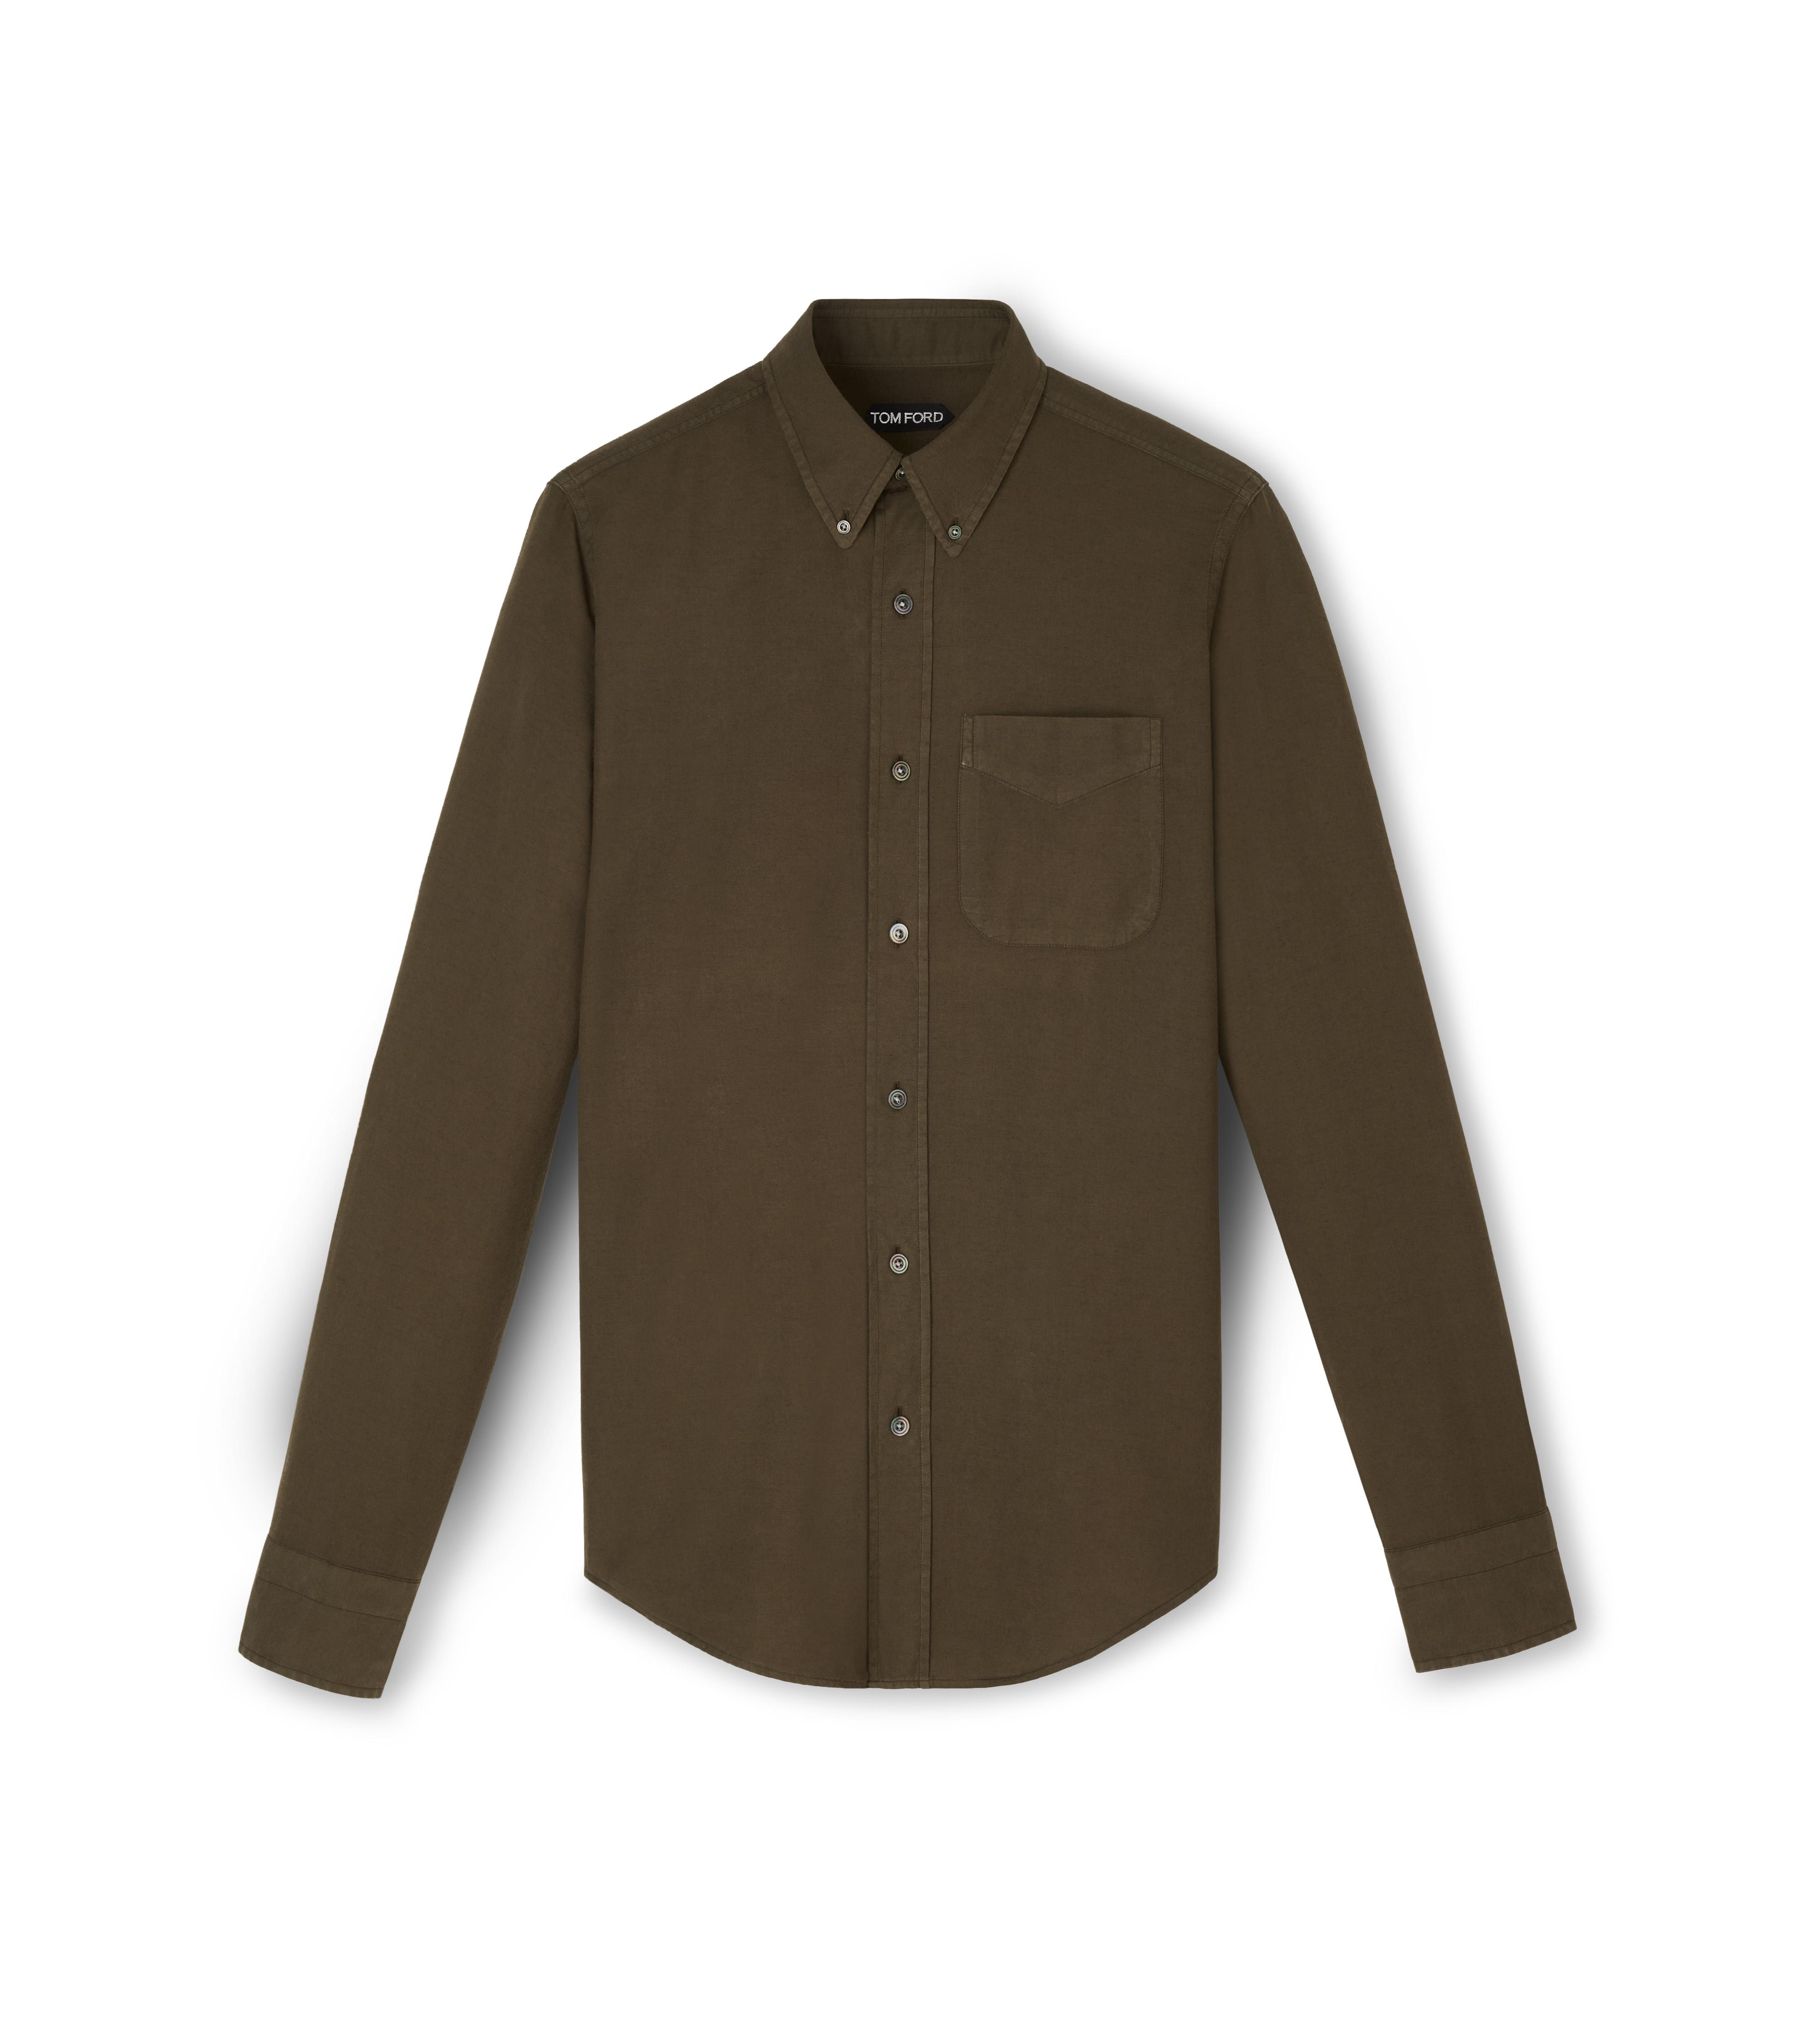 COTTON CASHMERE WASHED TWILL POINT COLLAR BUTTON DOWN SHIRT A thumbnail